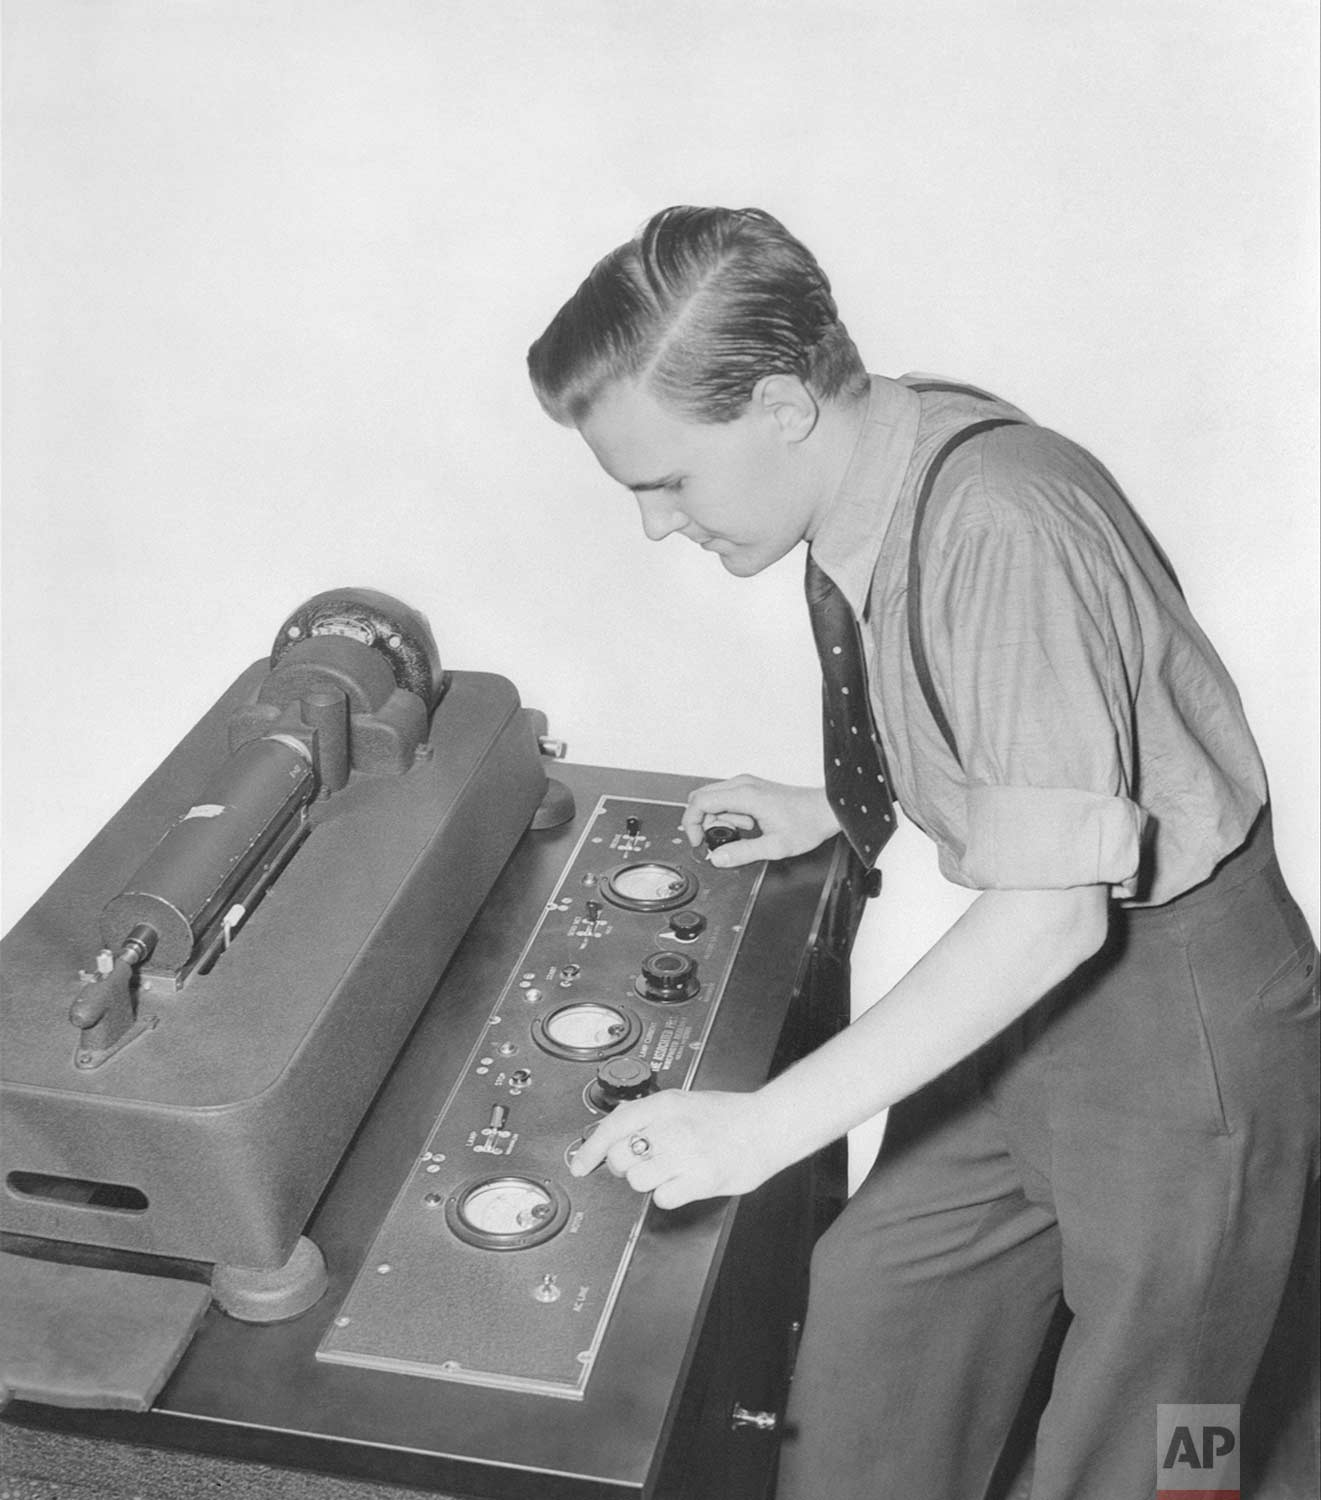 A wirephoto operator for the Associated Press is shown lining up the wirephoto receiver, New York, July 17, 1939.  (AP Photo)